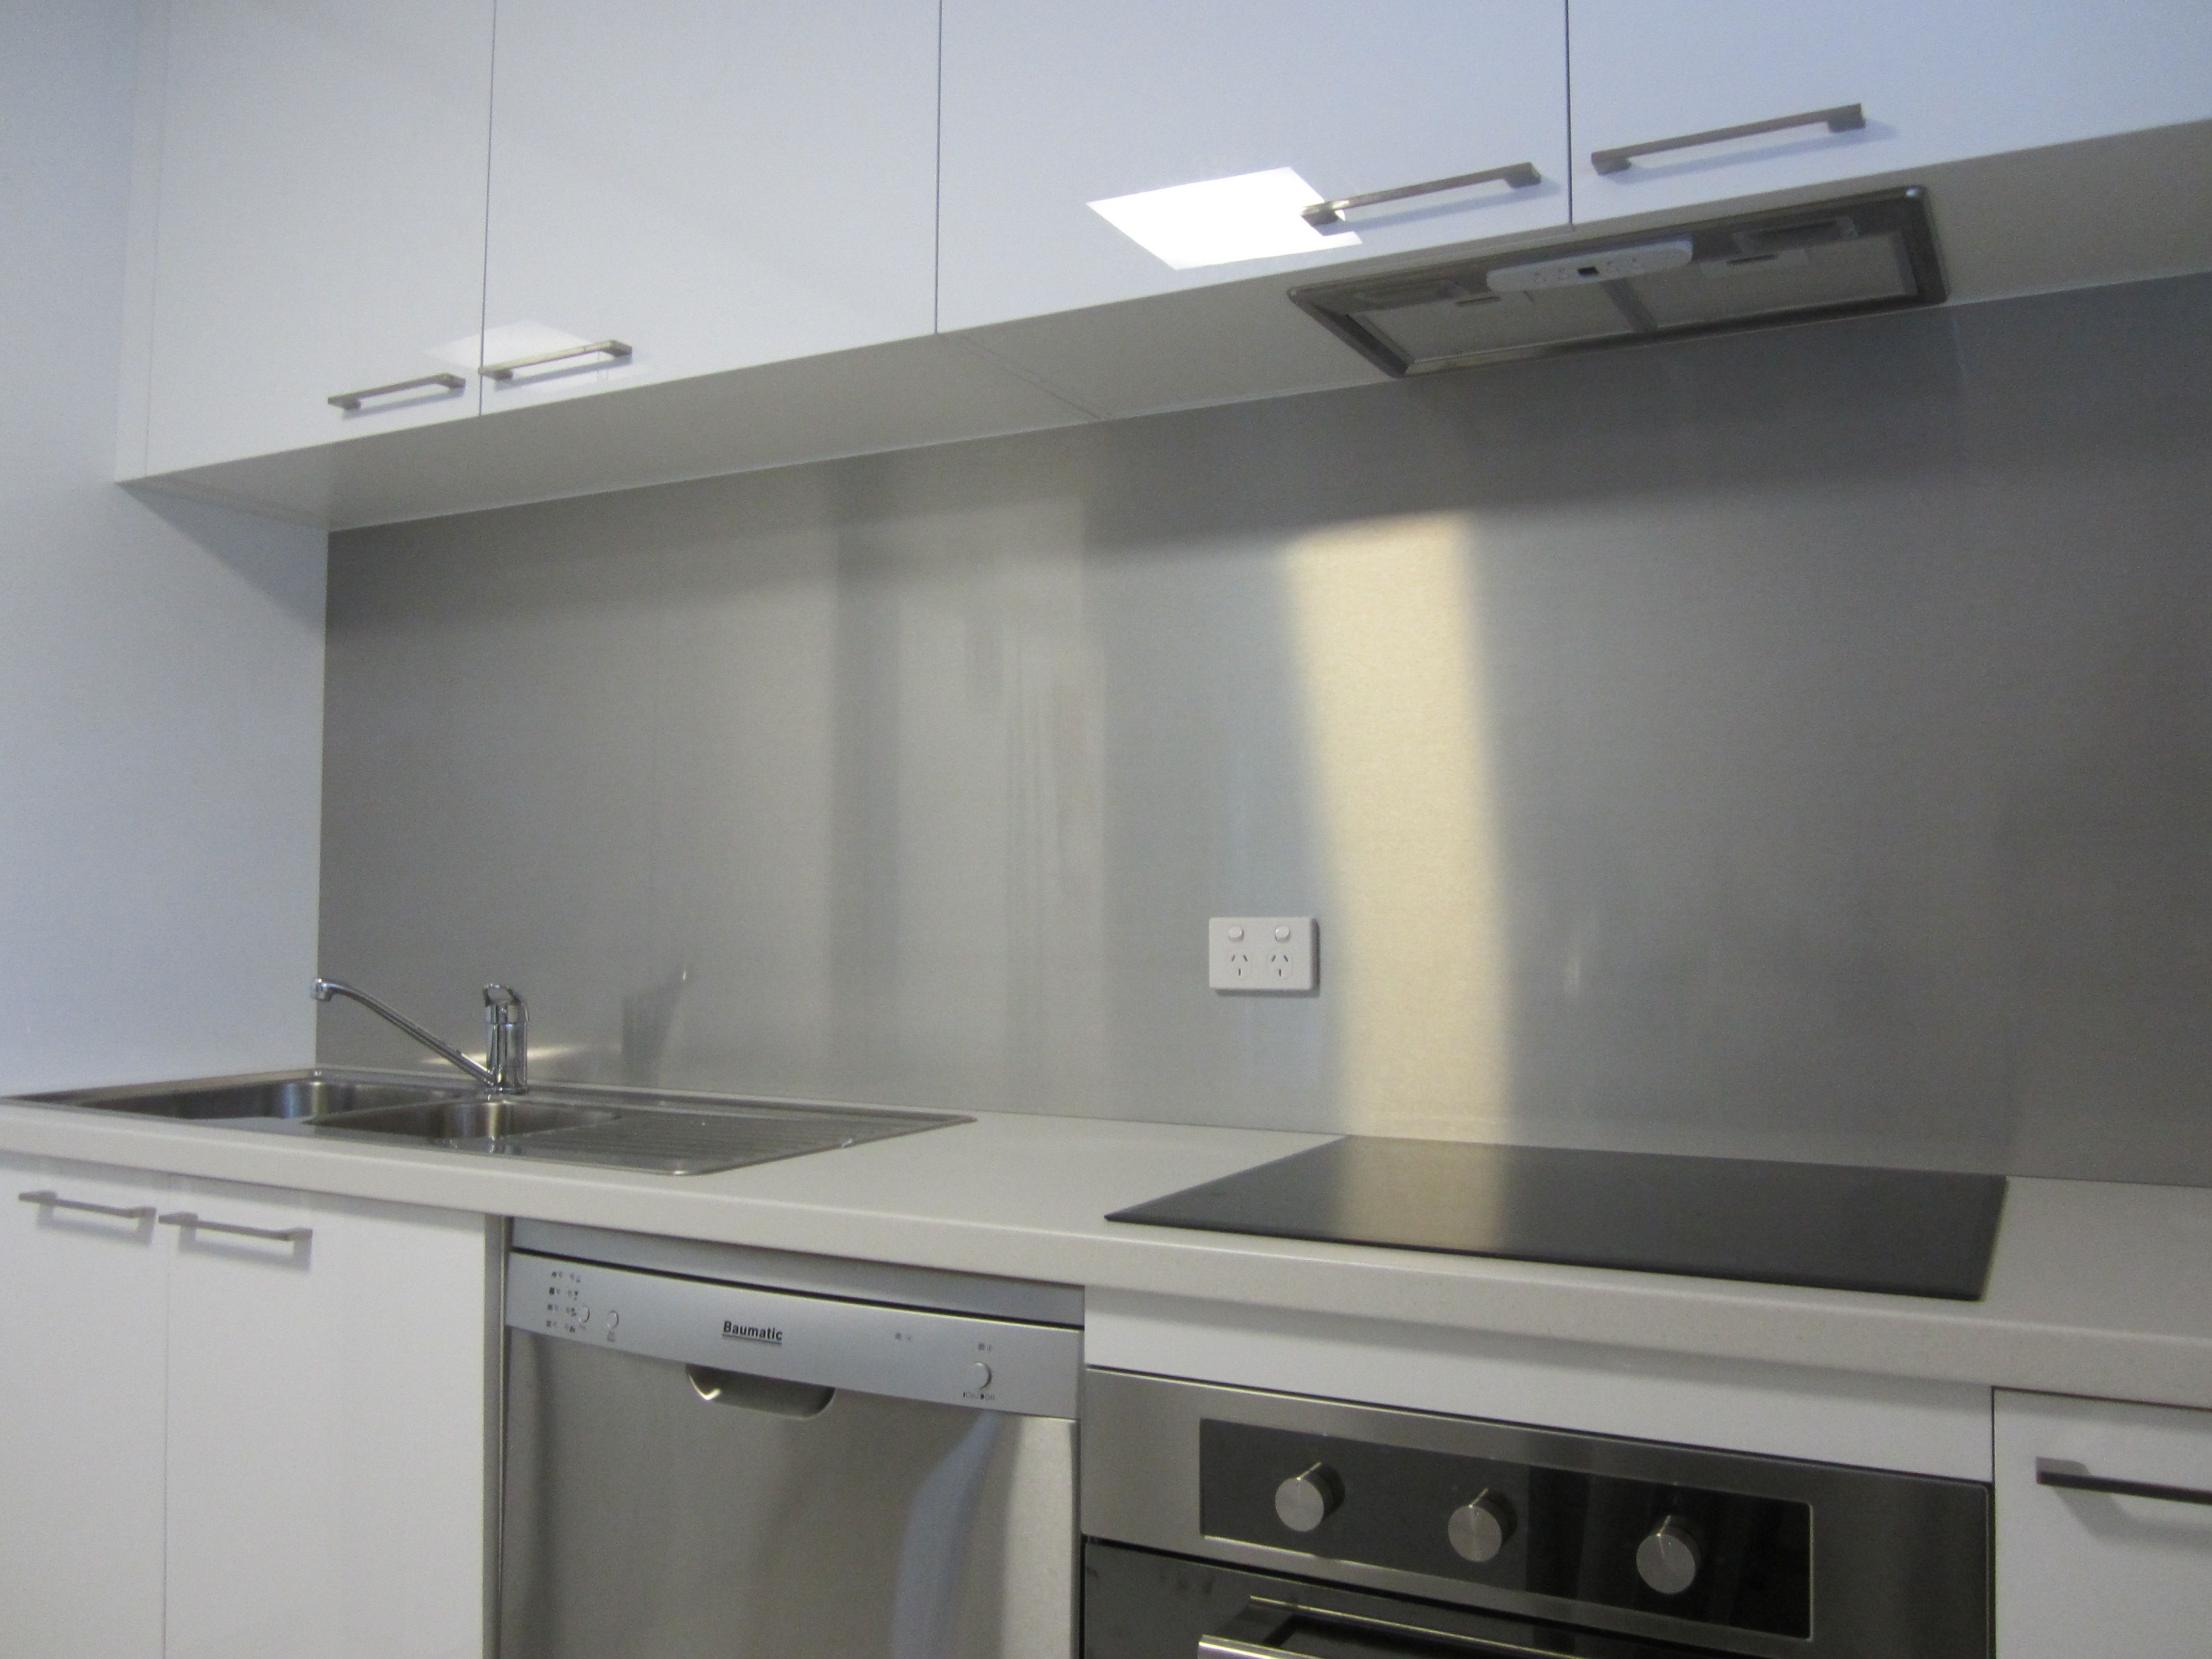 home u steel stainless awesome color with coolest countertops metal kitchen latest plate countertop custom